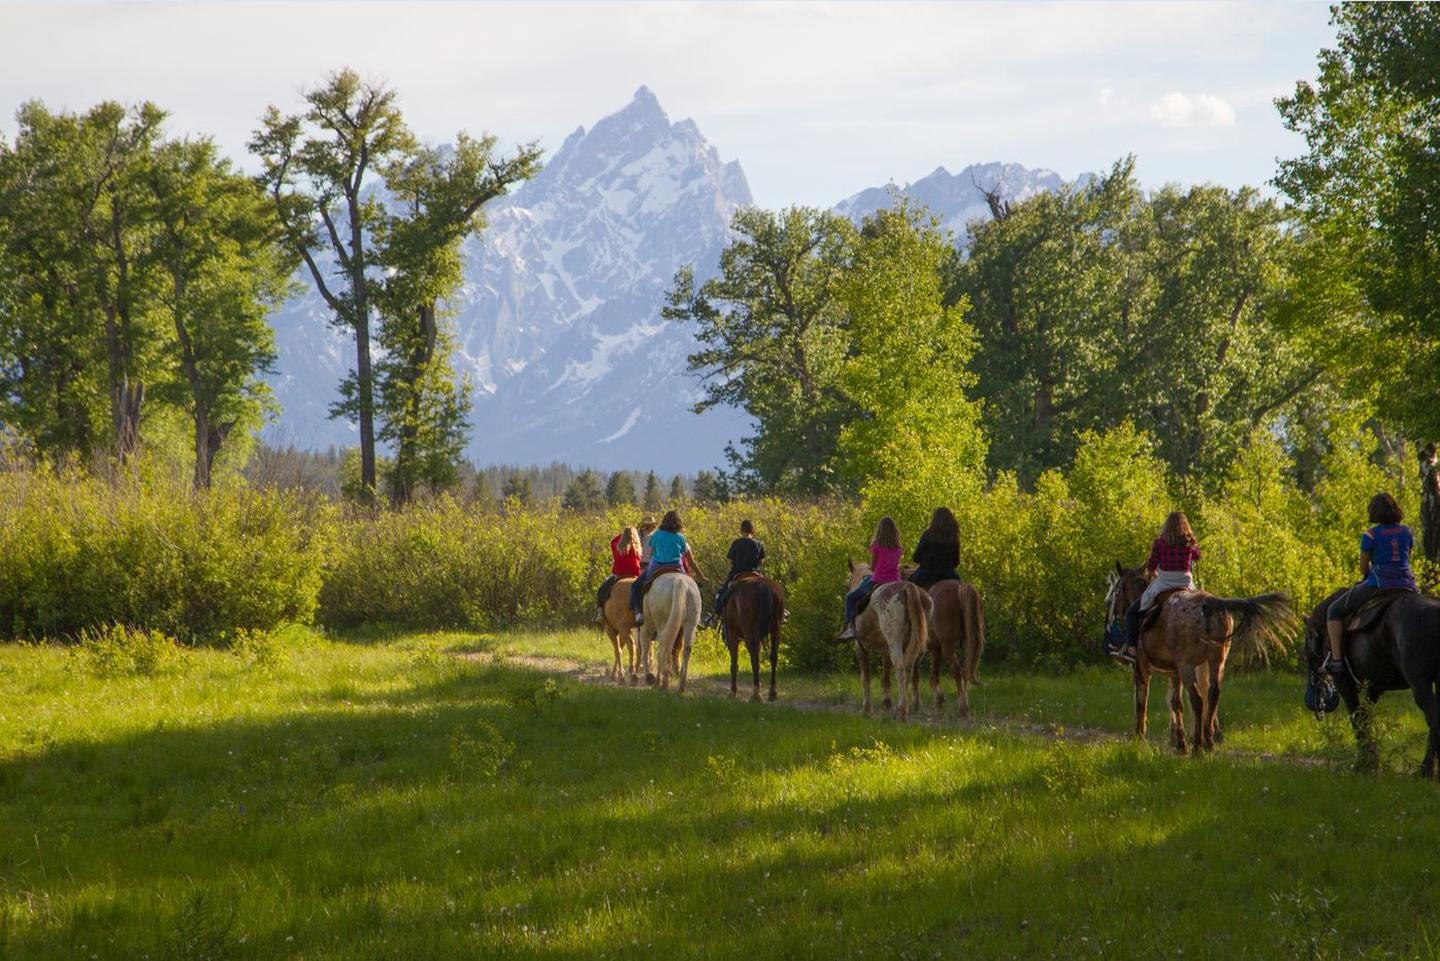 Colter Bay Horseback RidingNo trip to the Old West is complete without a horseback ride. We offer one- and two-hour rides suitable for all experience levels. Take in beautiful Teton vistas while riding among wildflower meadows.